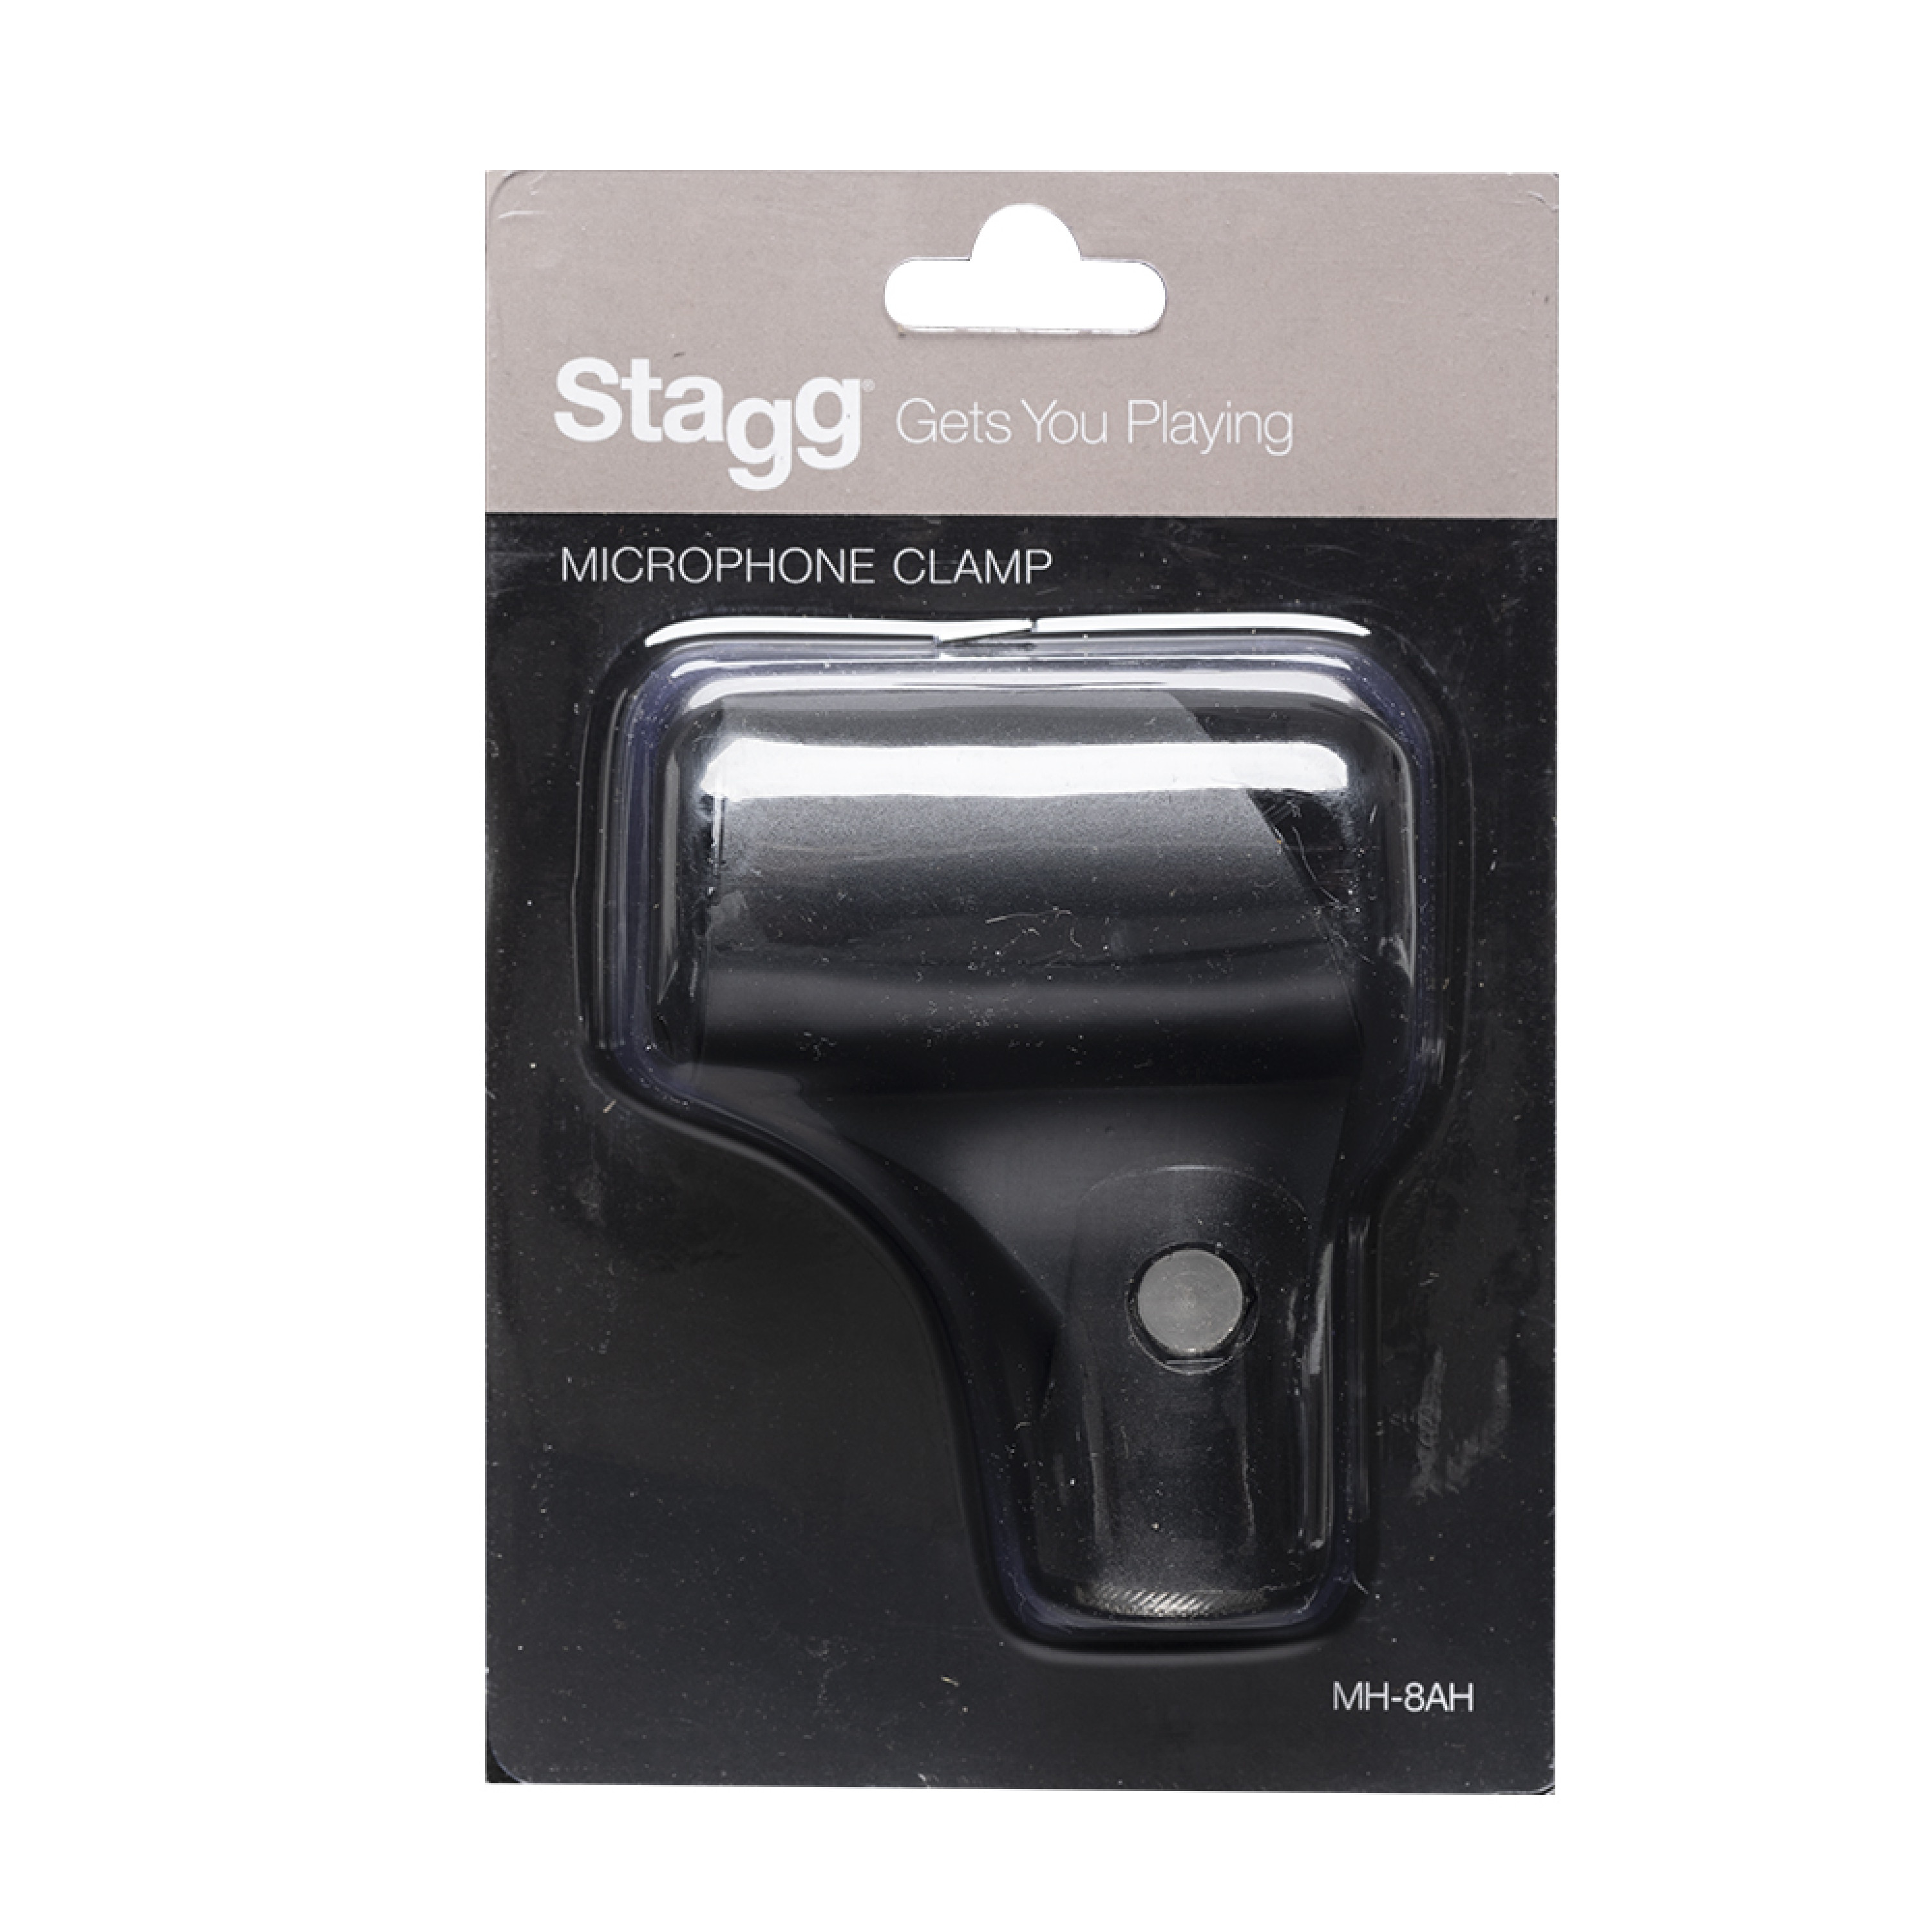 Stagg MH-8AH Mic Clamp-Rubber-Black